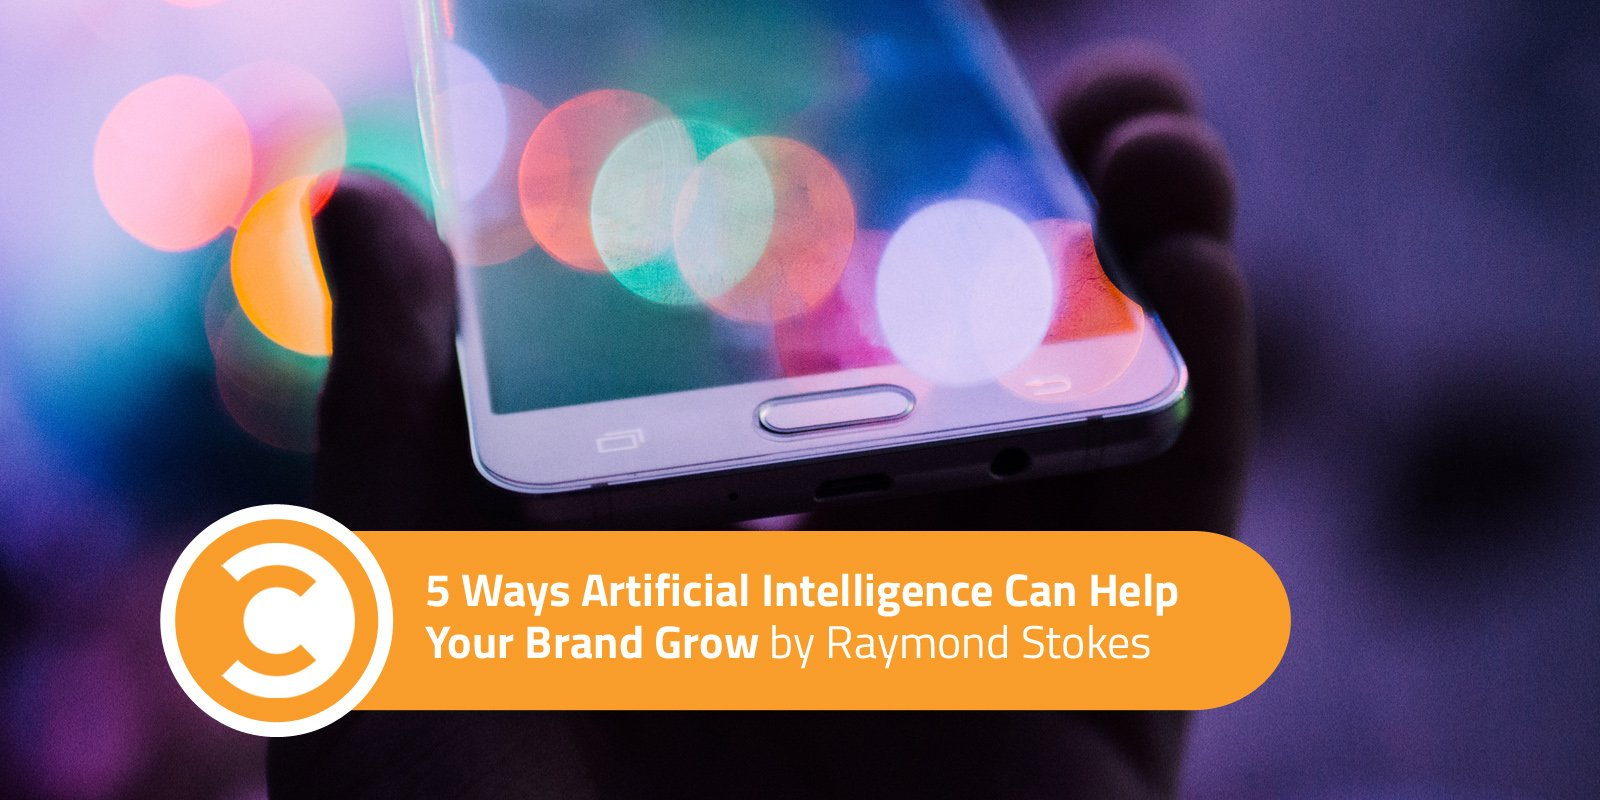 5 Ways Artificial Intelligence Can Help Your Brand Grow